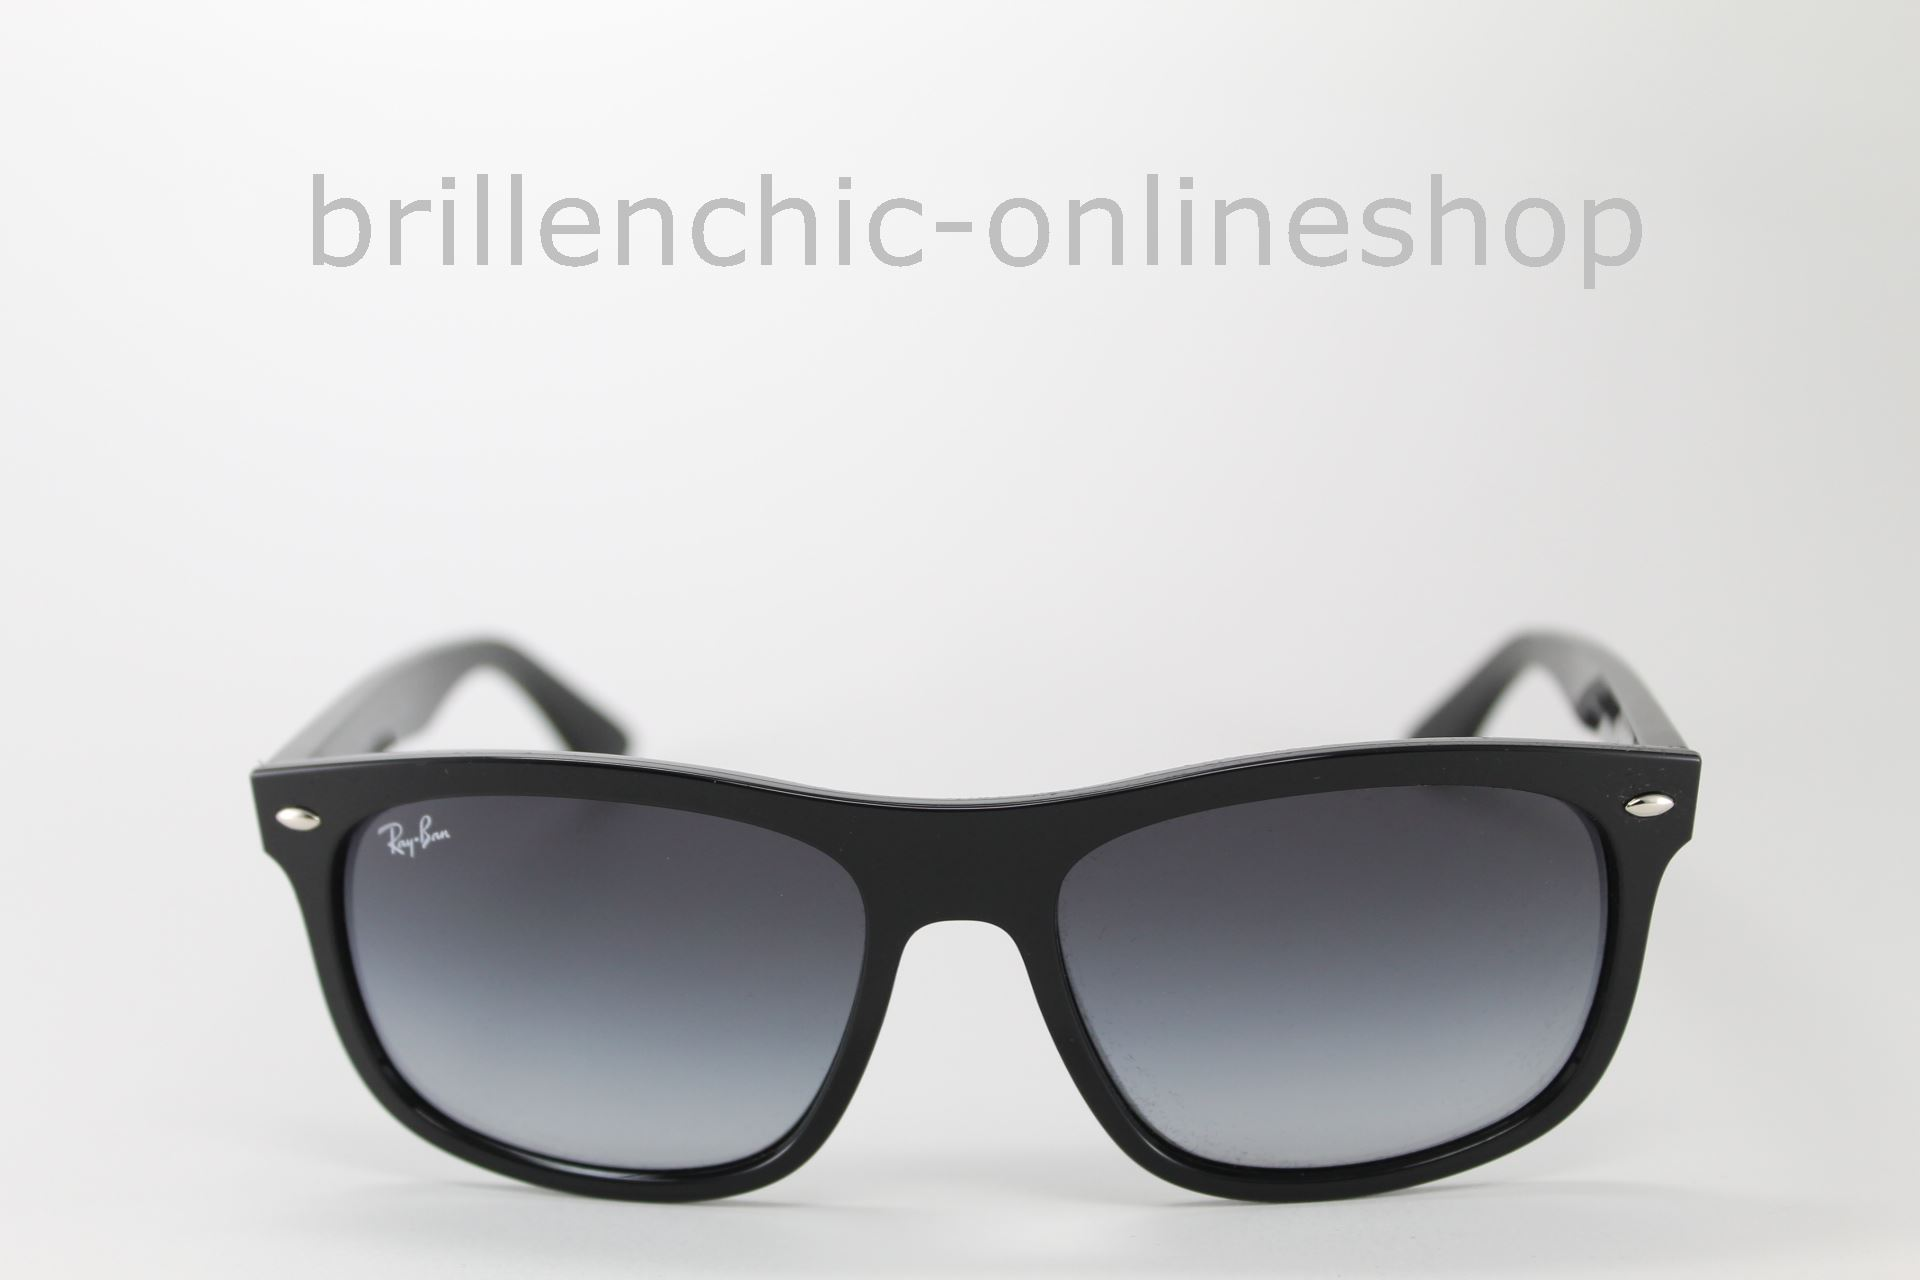 7866ed52f6 Brillenchic-onlineshop in Berlin - Ray Ban RB 4226 601 8G